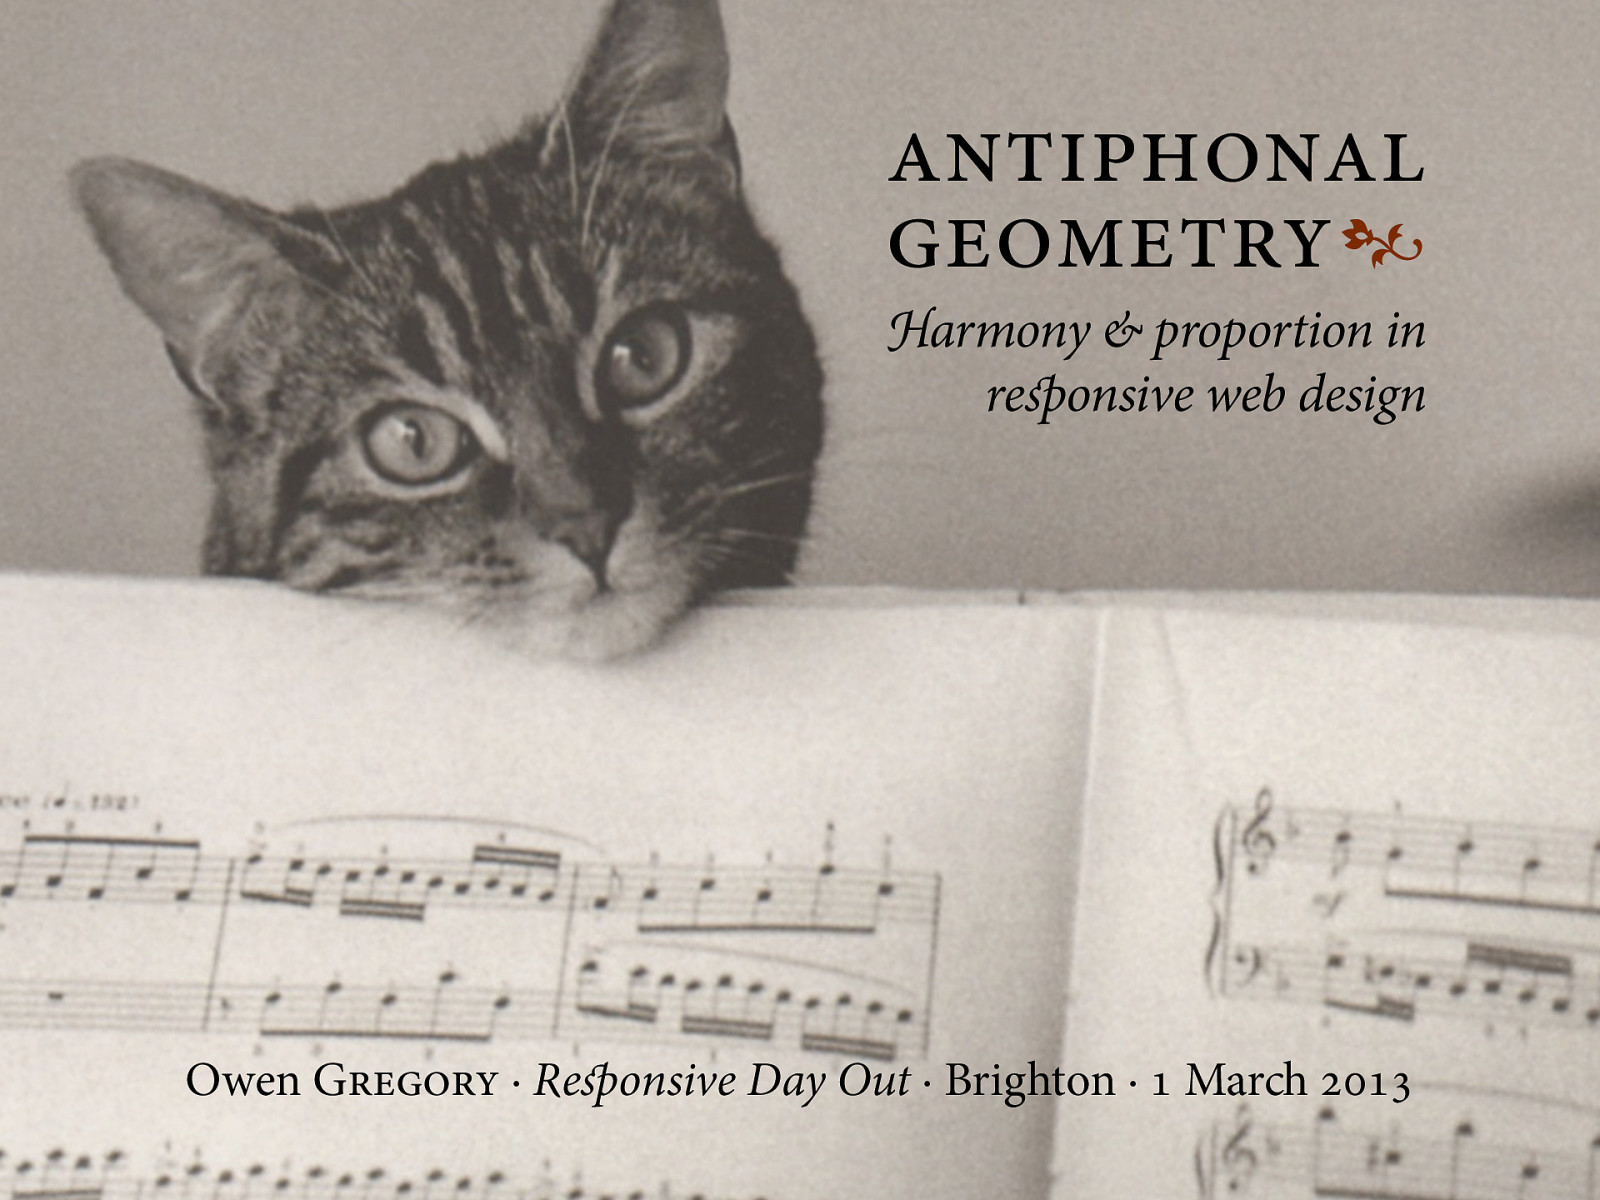 Antiphonal Geometry